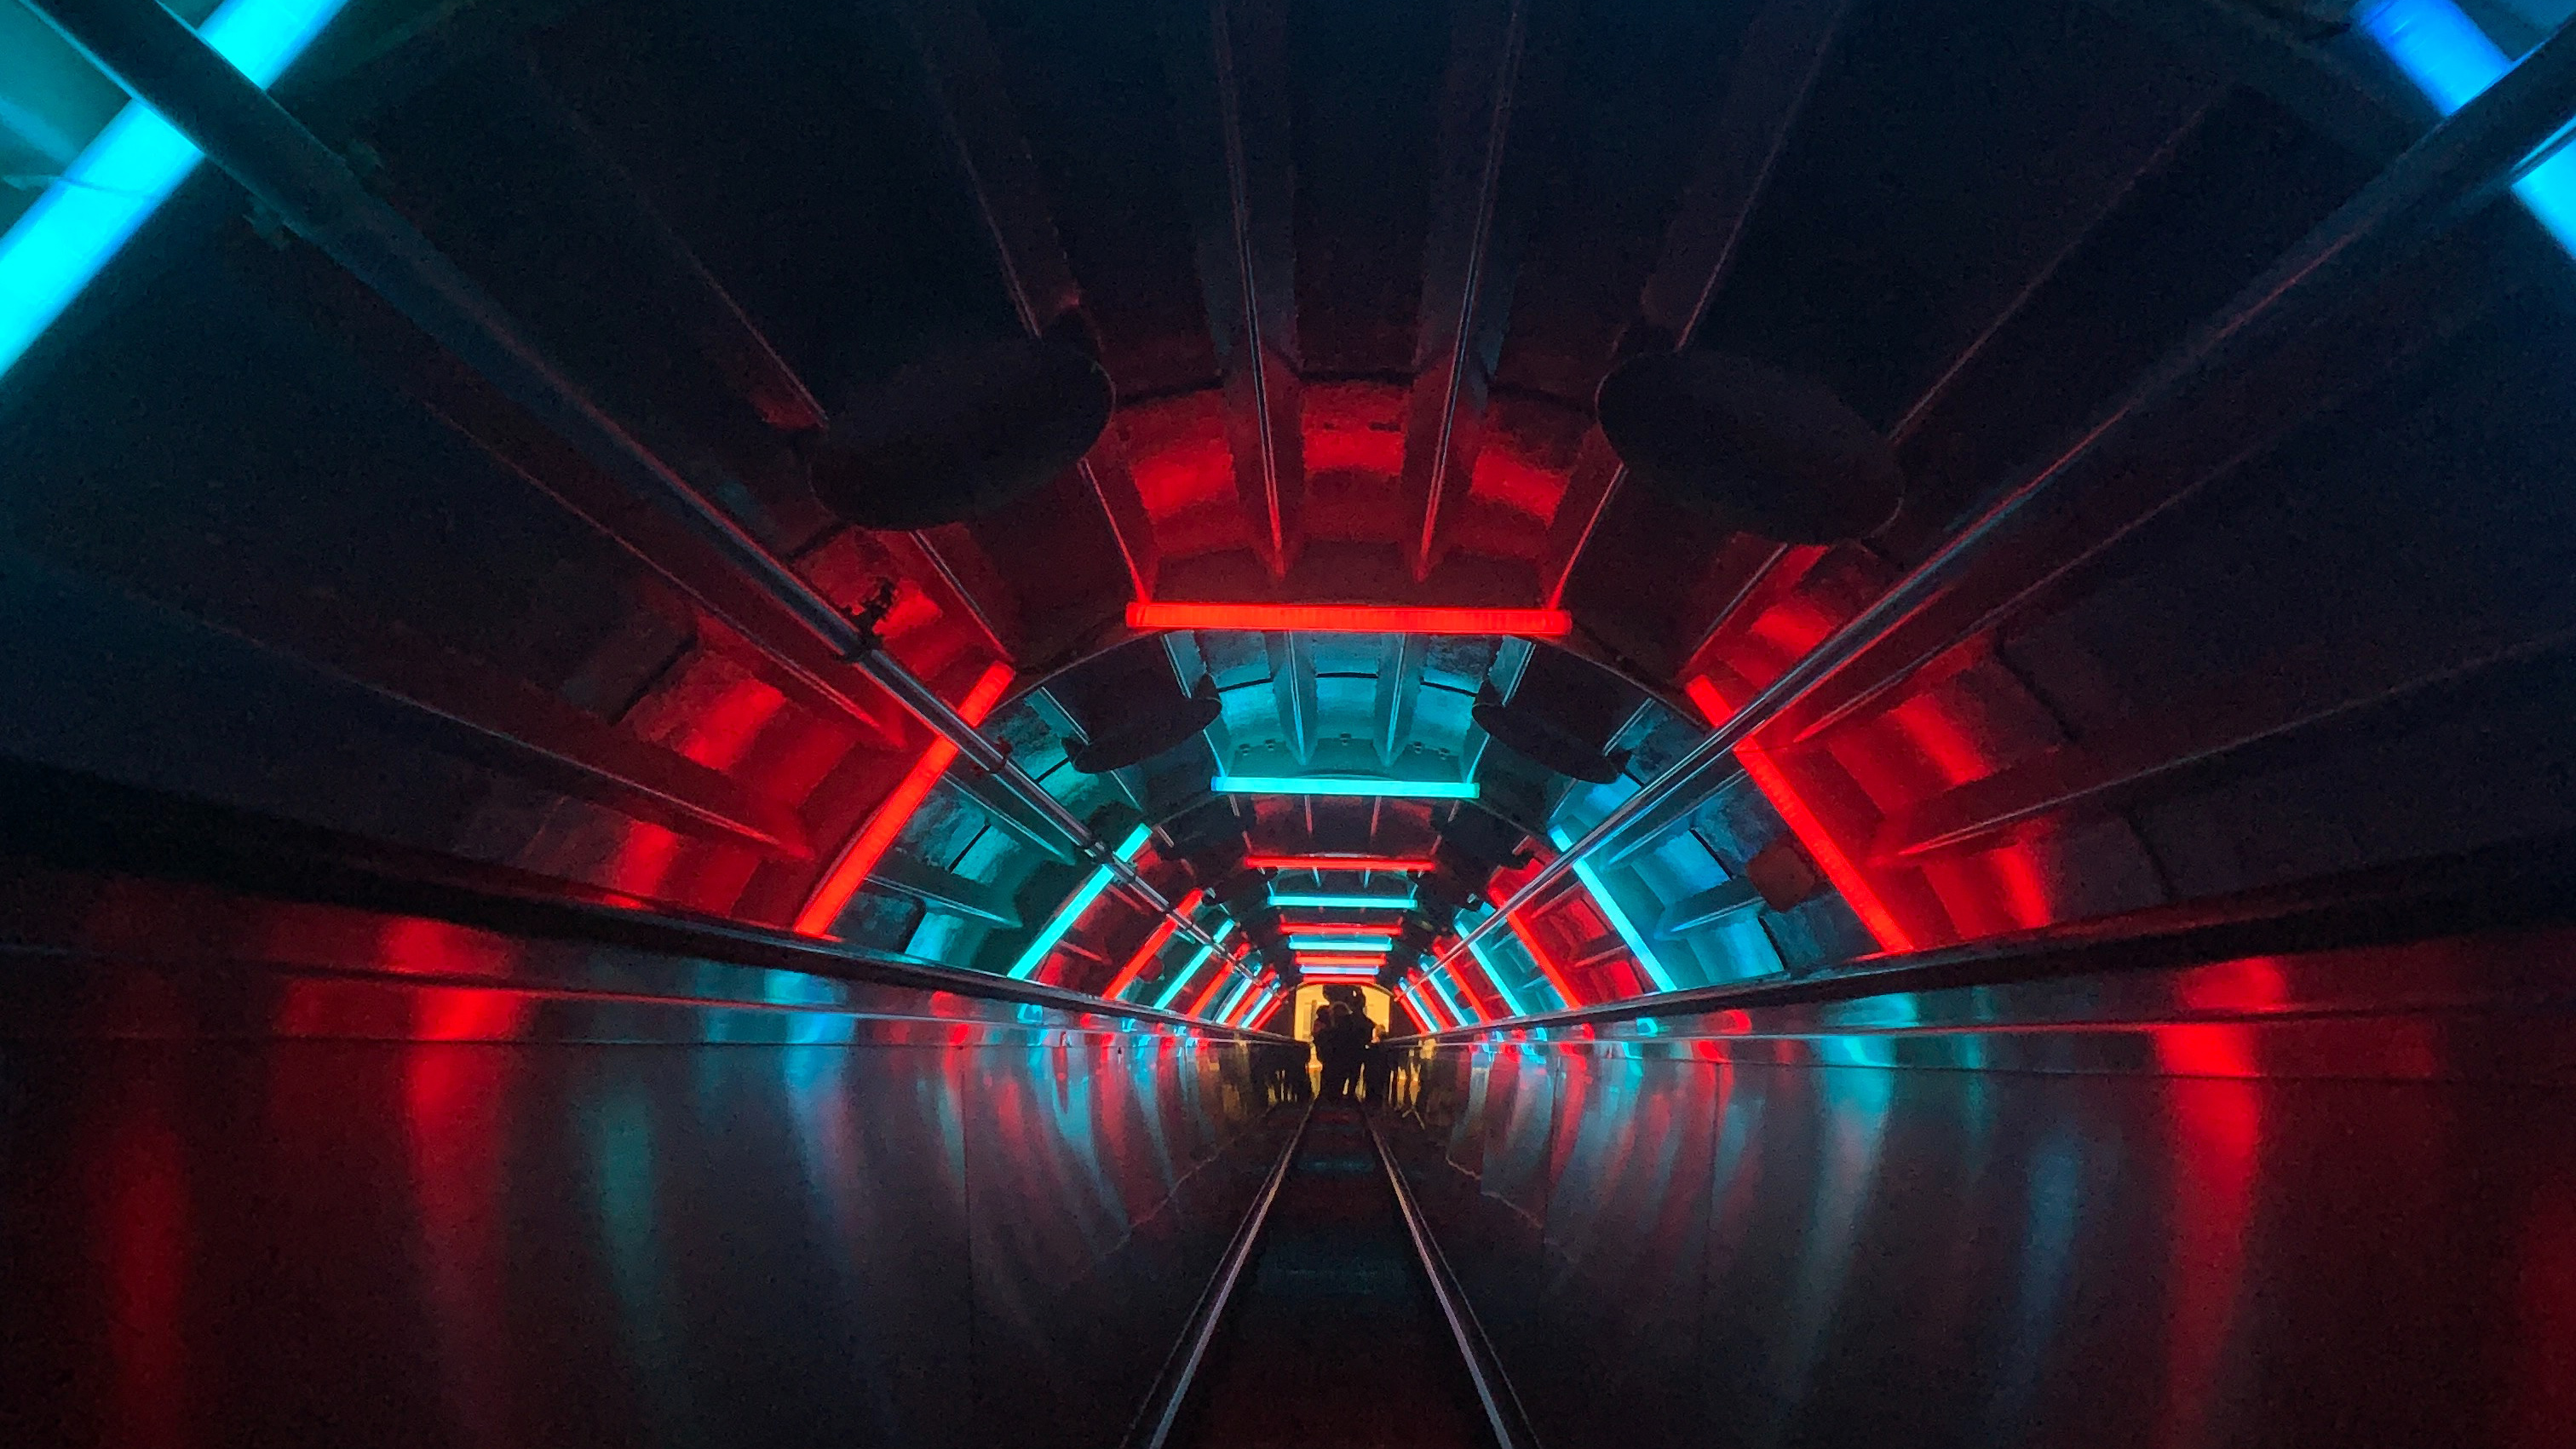 Escalator Tunnel Dark Neon, HD Photography, 4k Wallpapers, Images